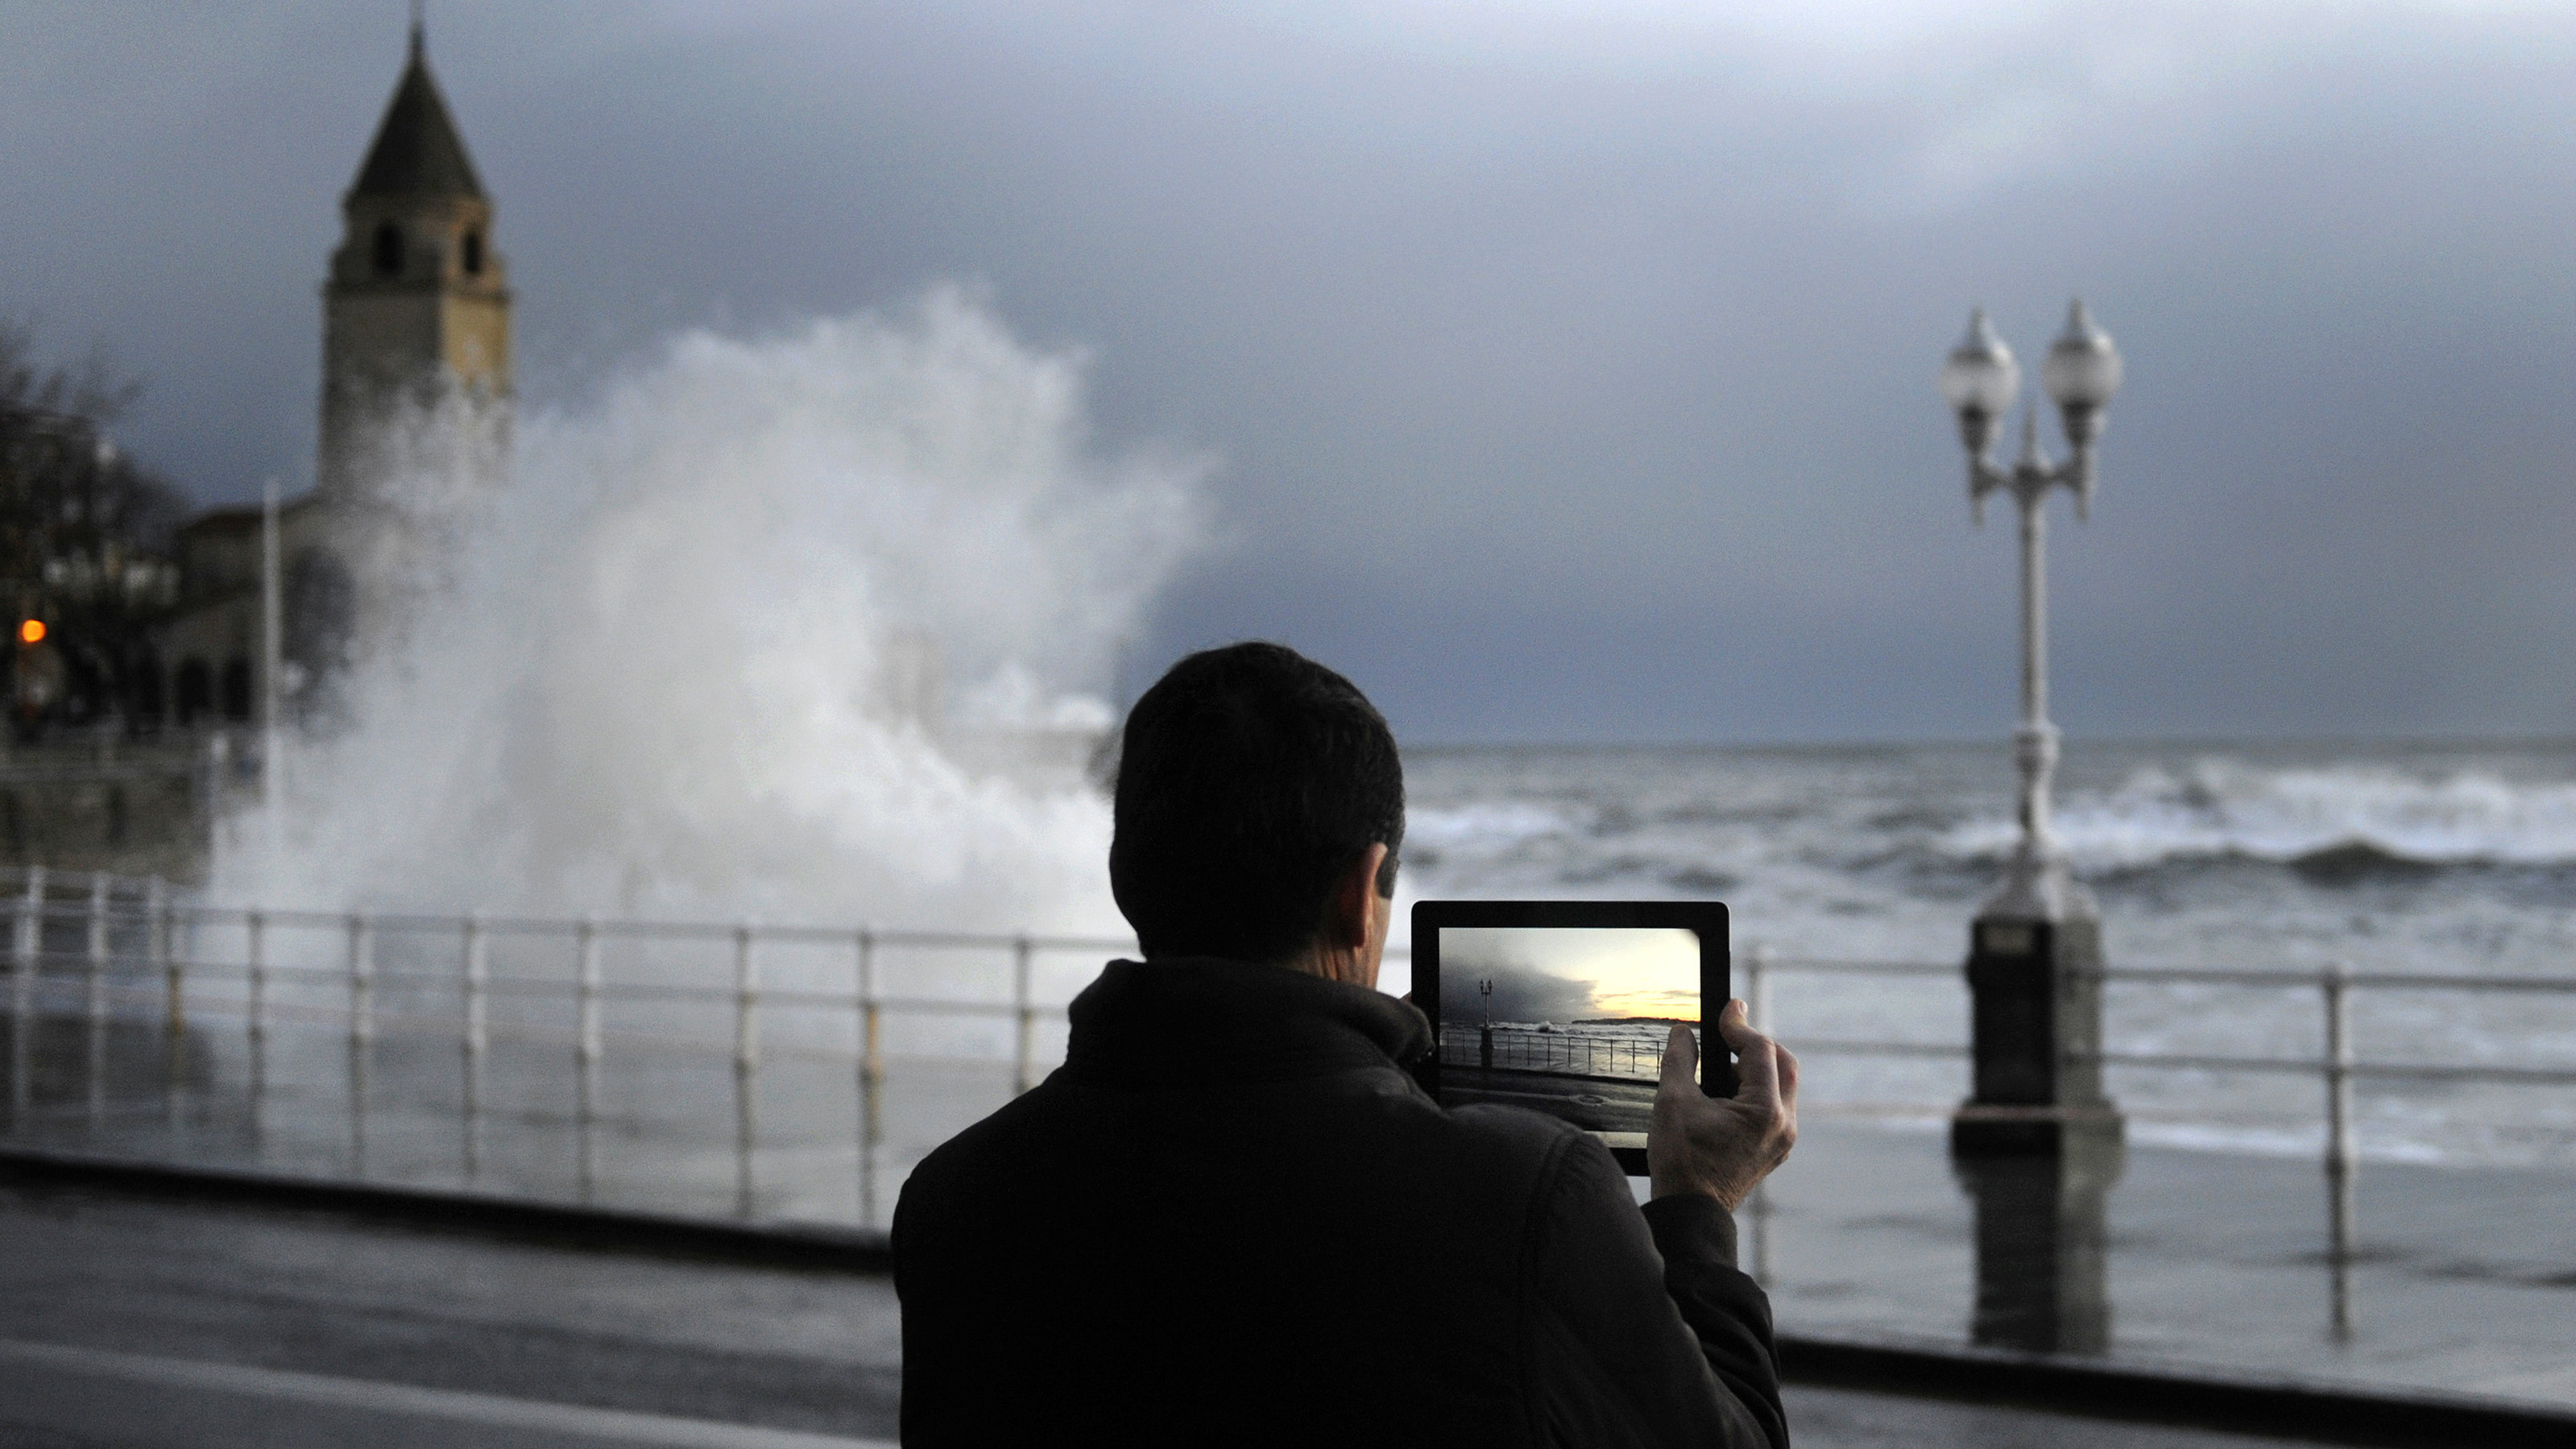 A man takes pictures as huge waves crash onto San Lorenzo's beach in Gijon, in the northern Spanish region of Asturias February 5, 2014. REUTERS/Eloy Alonso (SPAIN - Tags: ENVIRONMENT)